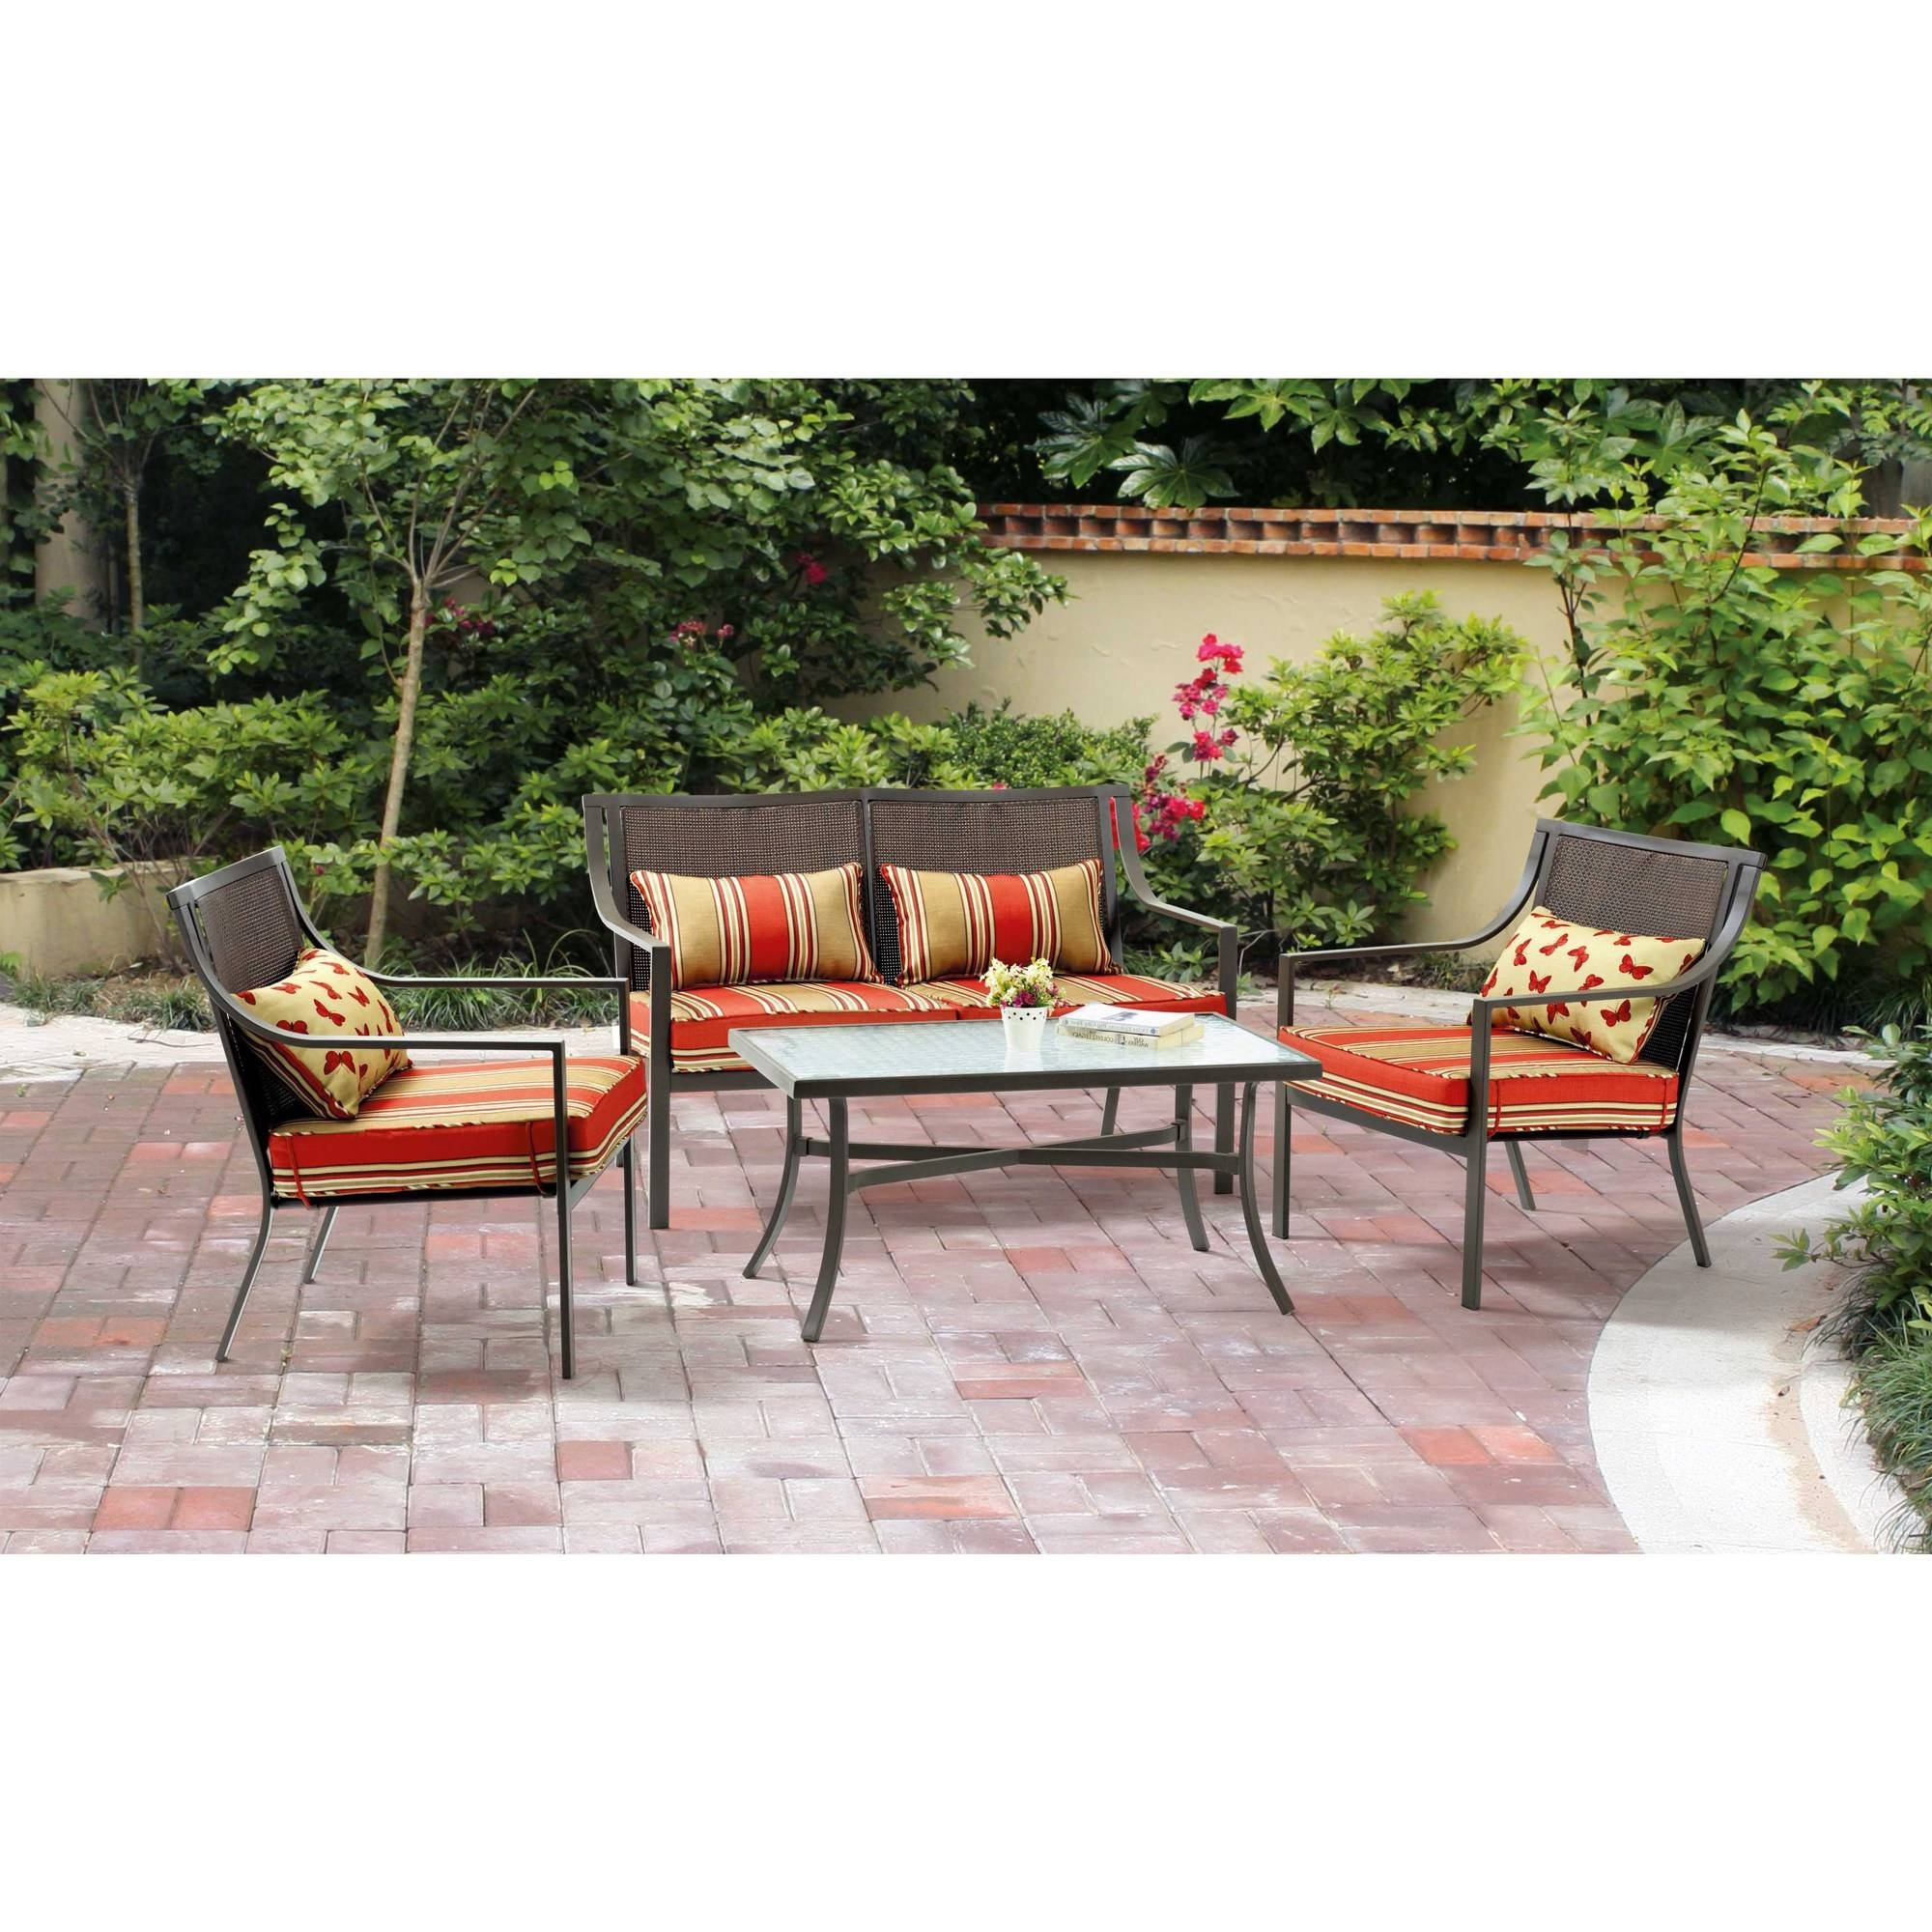 Outdoor Patio Chair Edmonton – Outdoor Designs With Regard To Well Liked Edmonton Patio Conversation Sets (View 9 of 15)